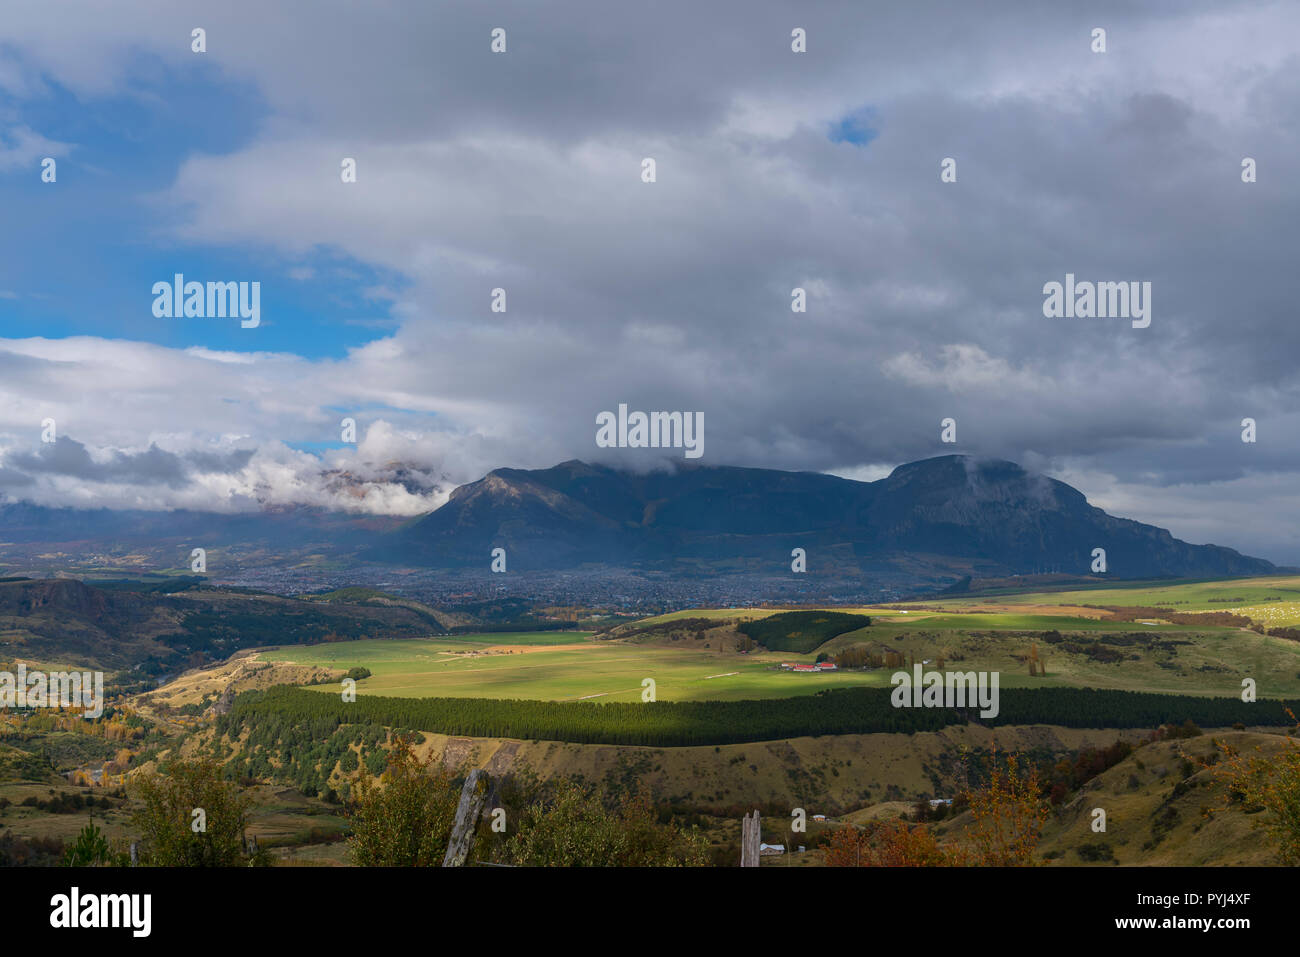 Landscape of the city of Coyhaique seen from a viewpoint on the outskirts of the city, it is observed the rain clouds on it, southern Chile - Stock Image